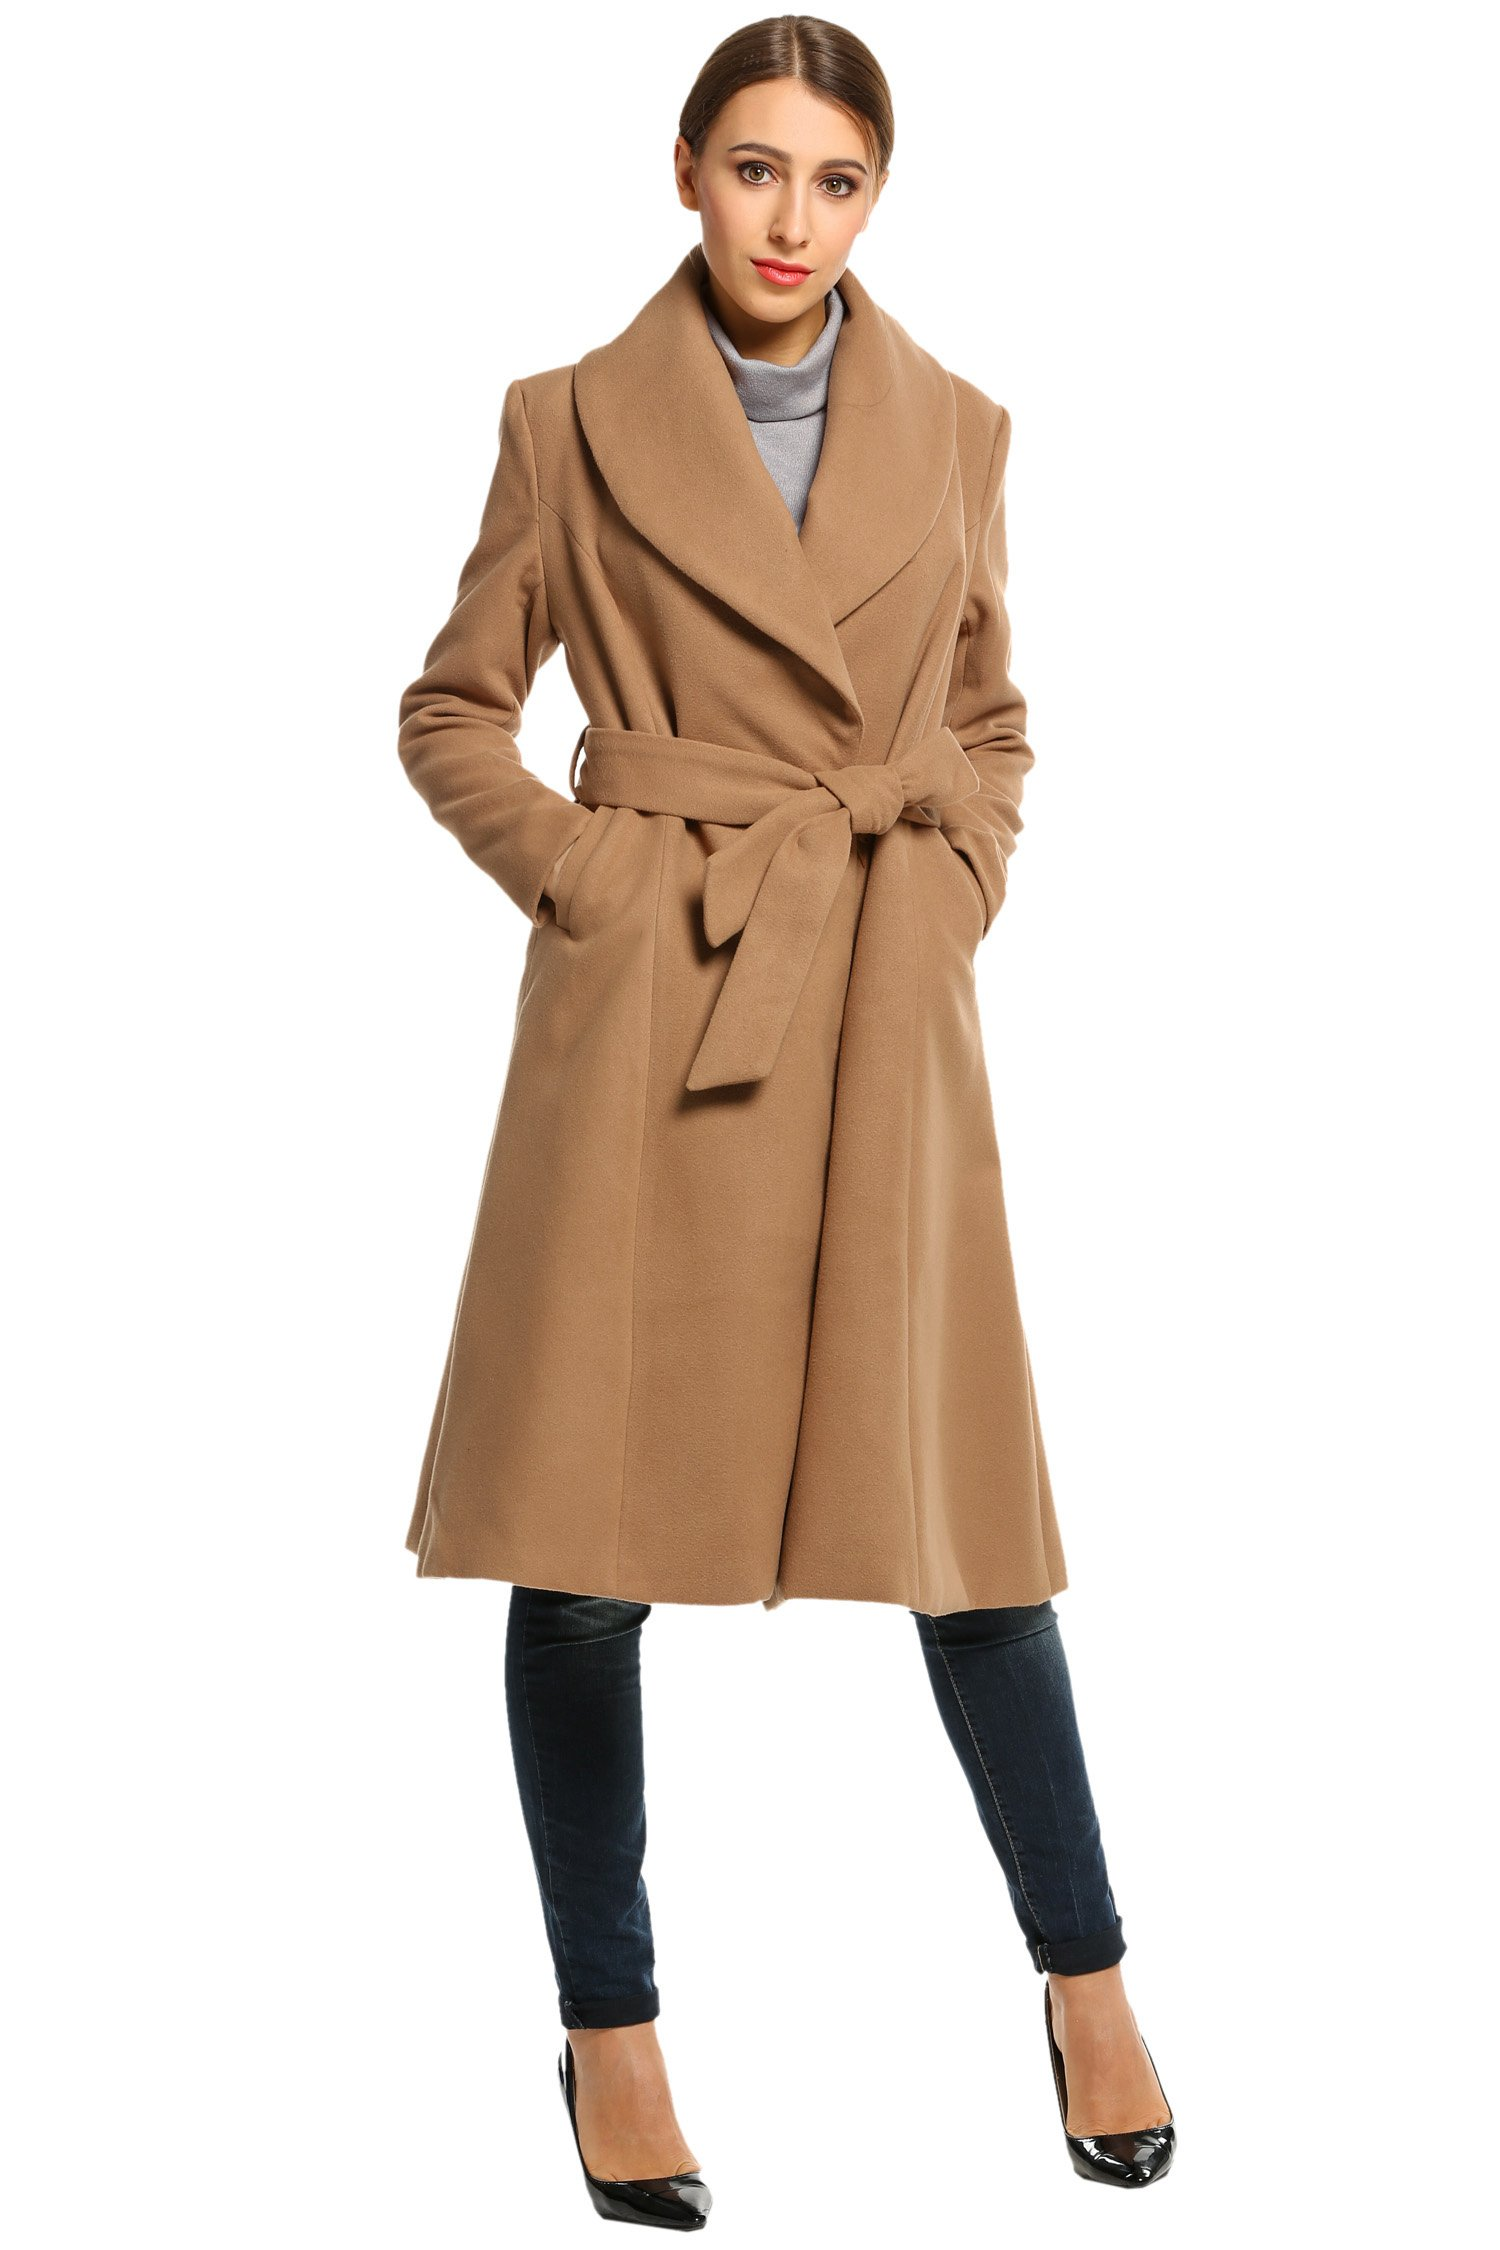 Hotouch Womens Single Button Closure Winter Long Trench Jackets Coat Camel XL